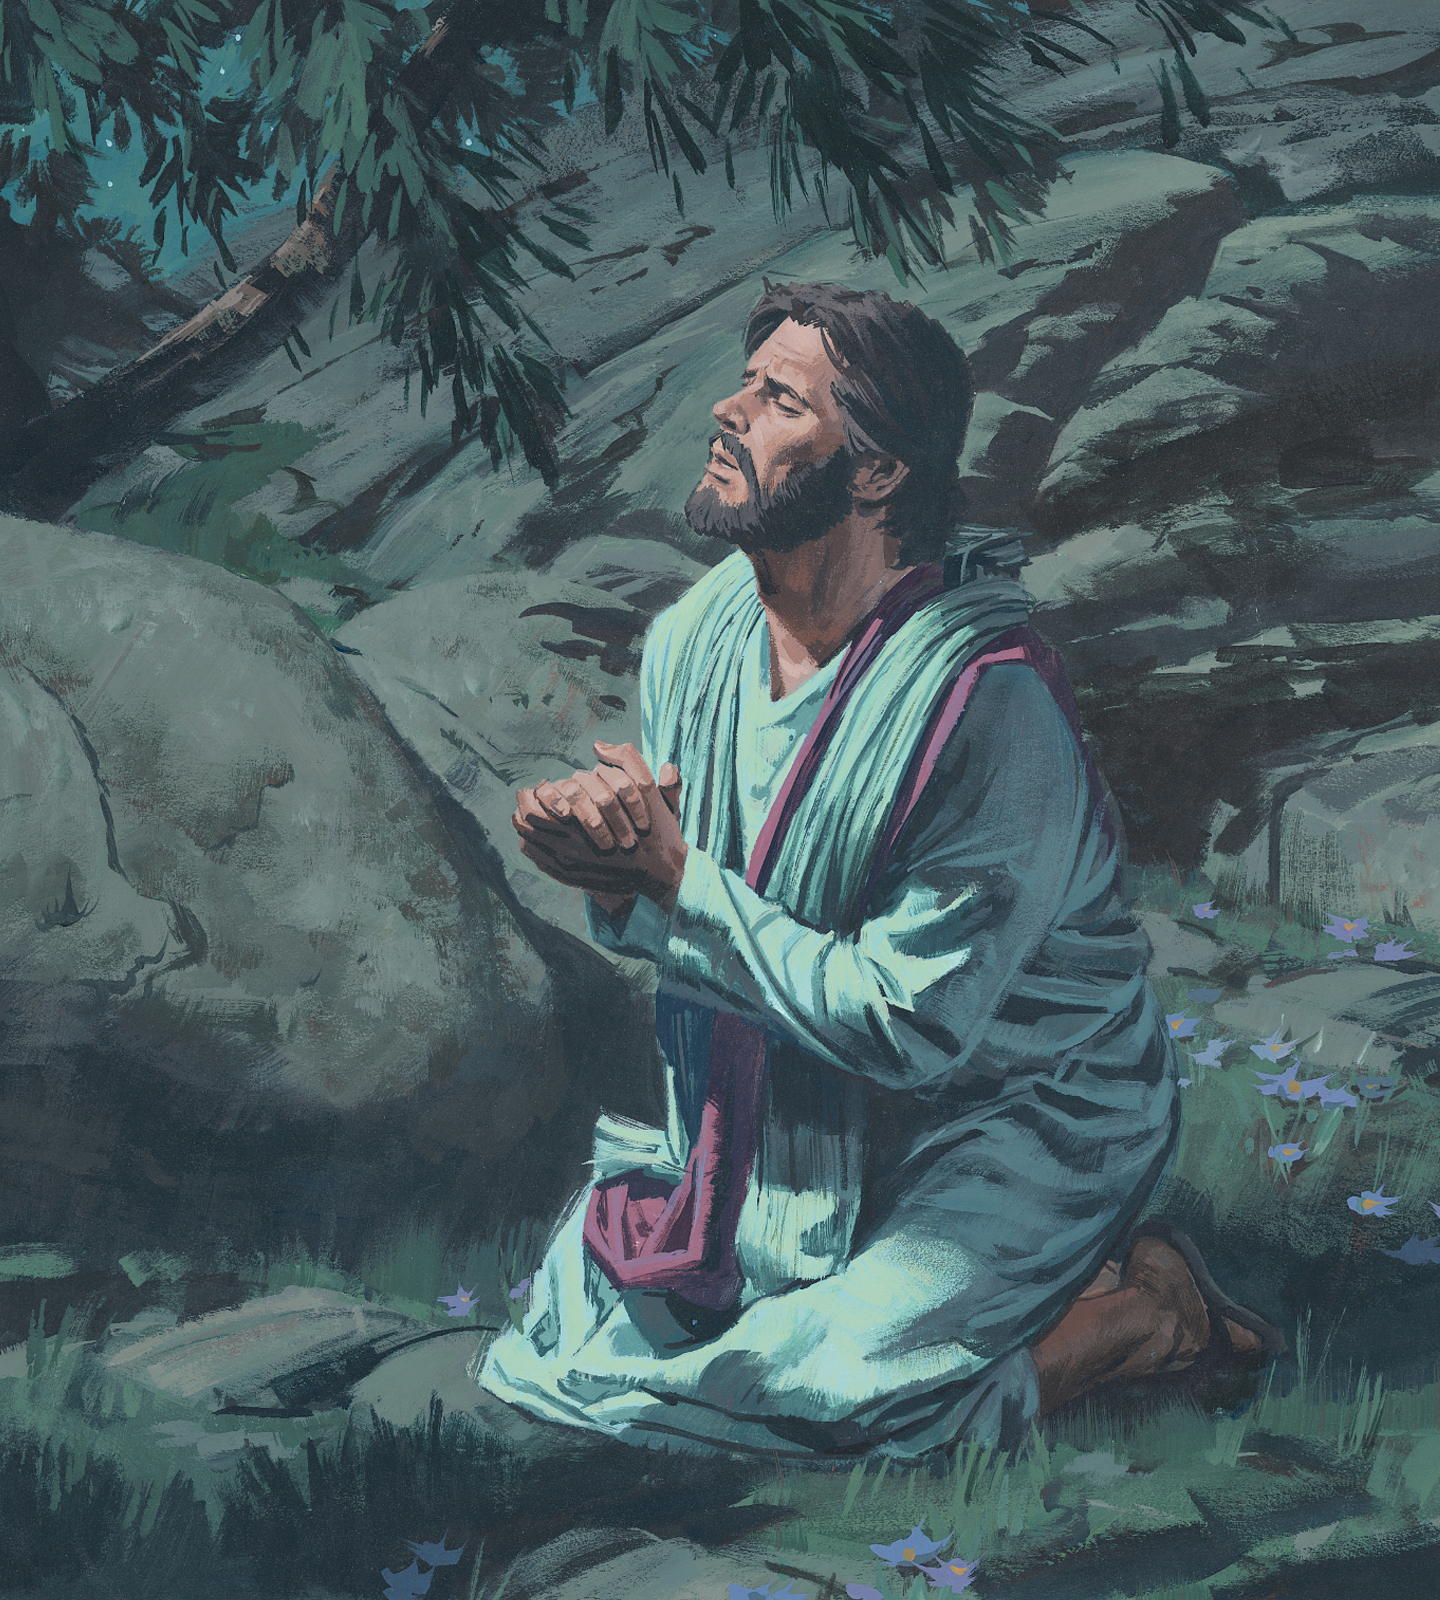 Jesus suffers in the garden of gethsemane Jesus praying in the garden of gethsemane